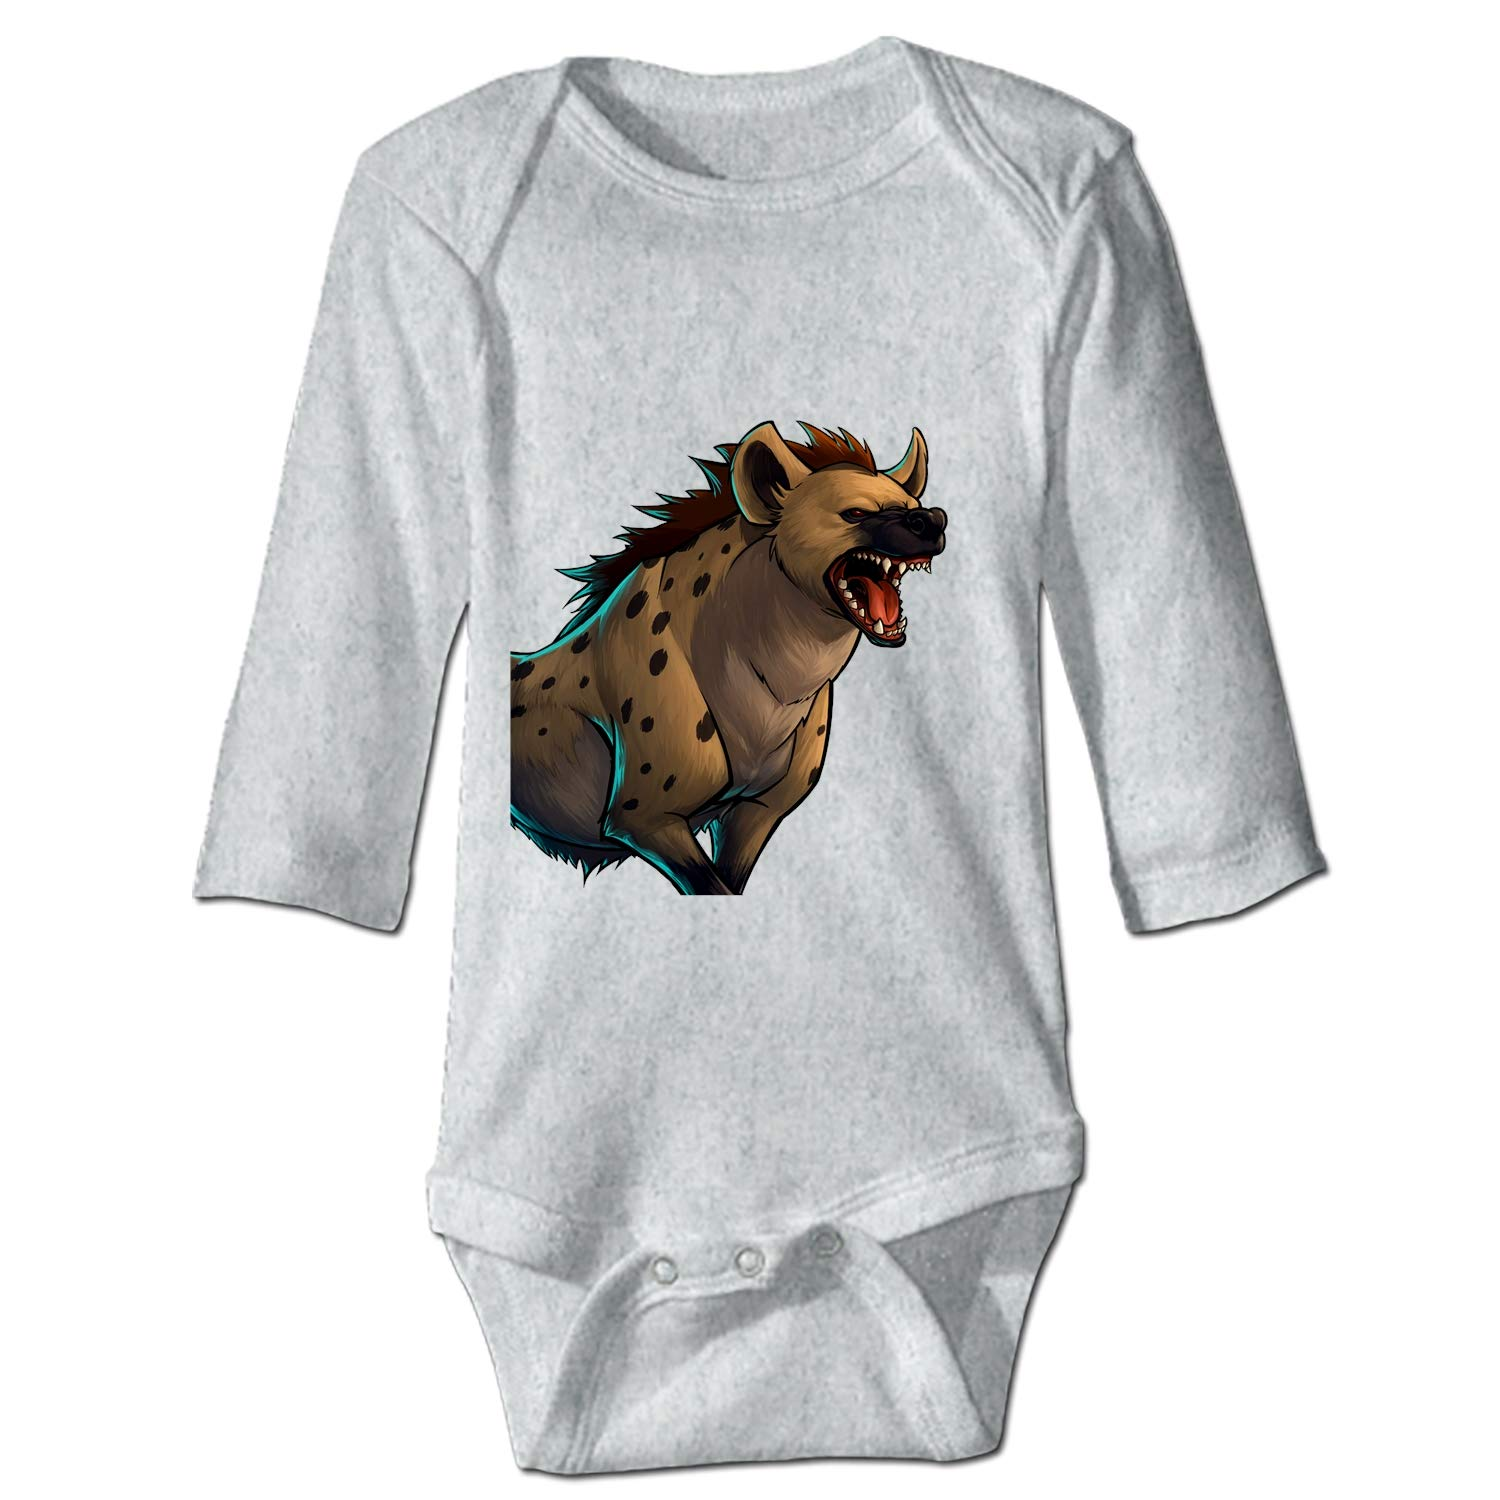 YSKHDBC Baby Beaver Bodysuits Long Sleeve Rompers Outfits Clothes